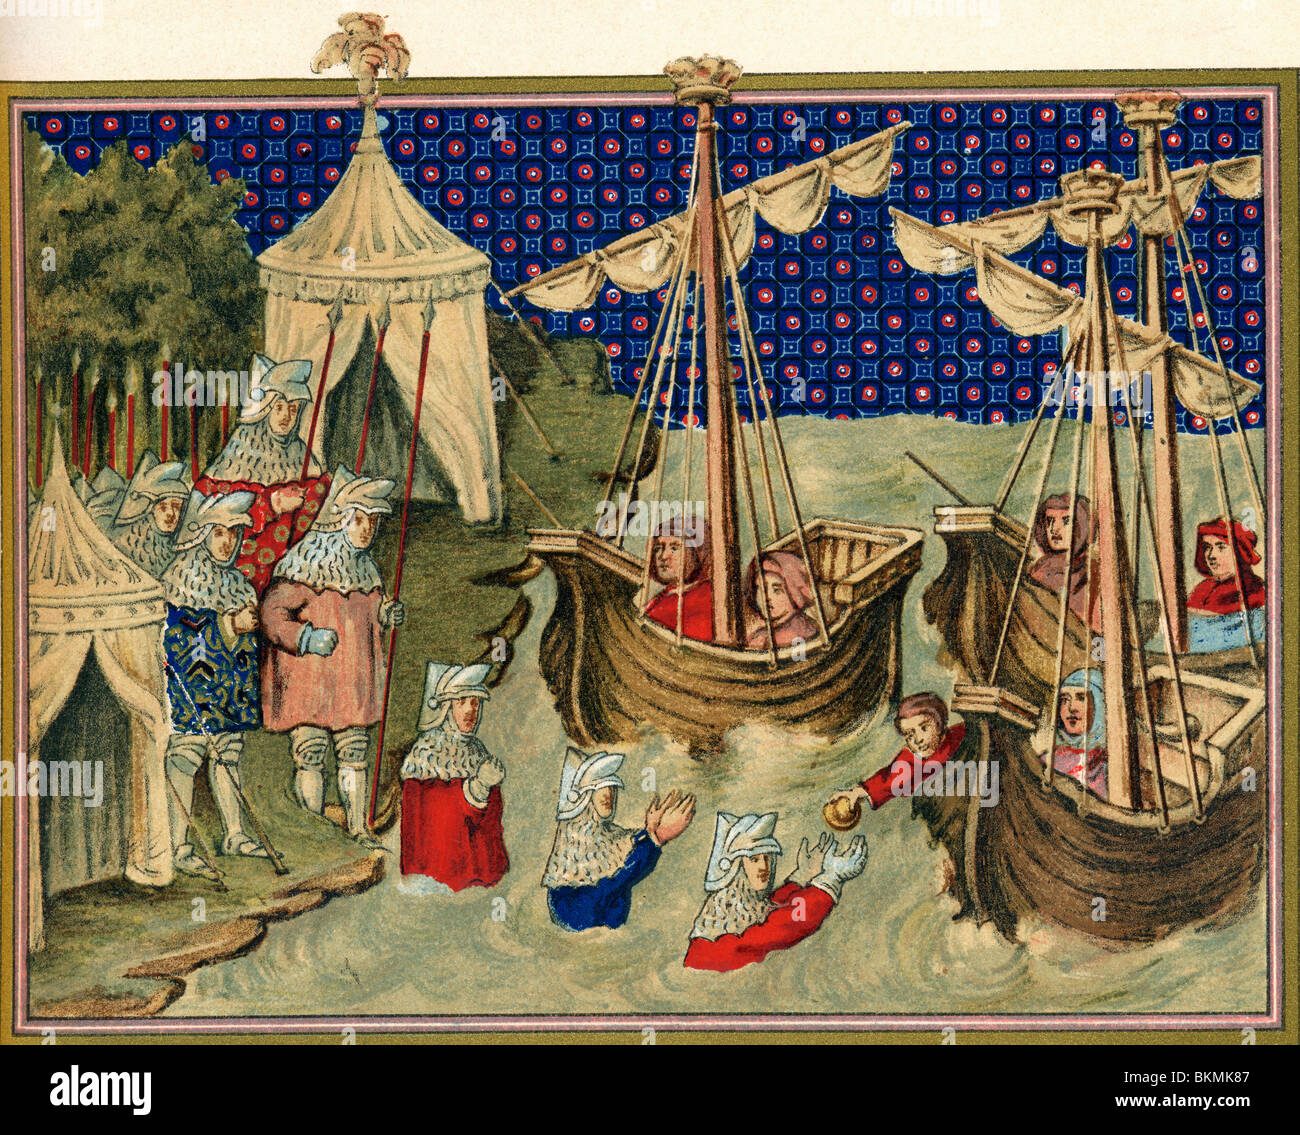 Scene from Richard II's campaign in Ireland in 1394. Ships bringing provisions to the English army. - Stock Image